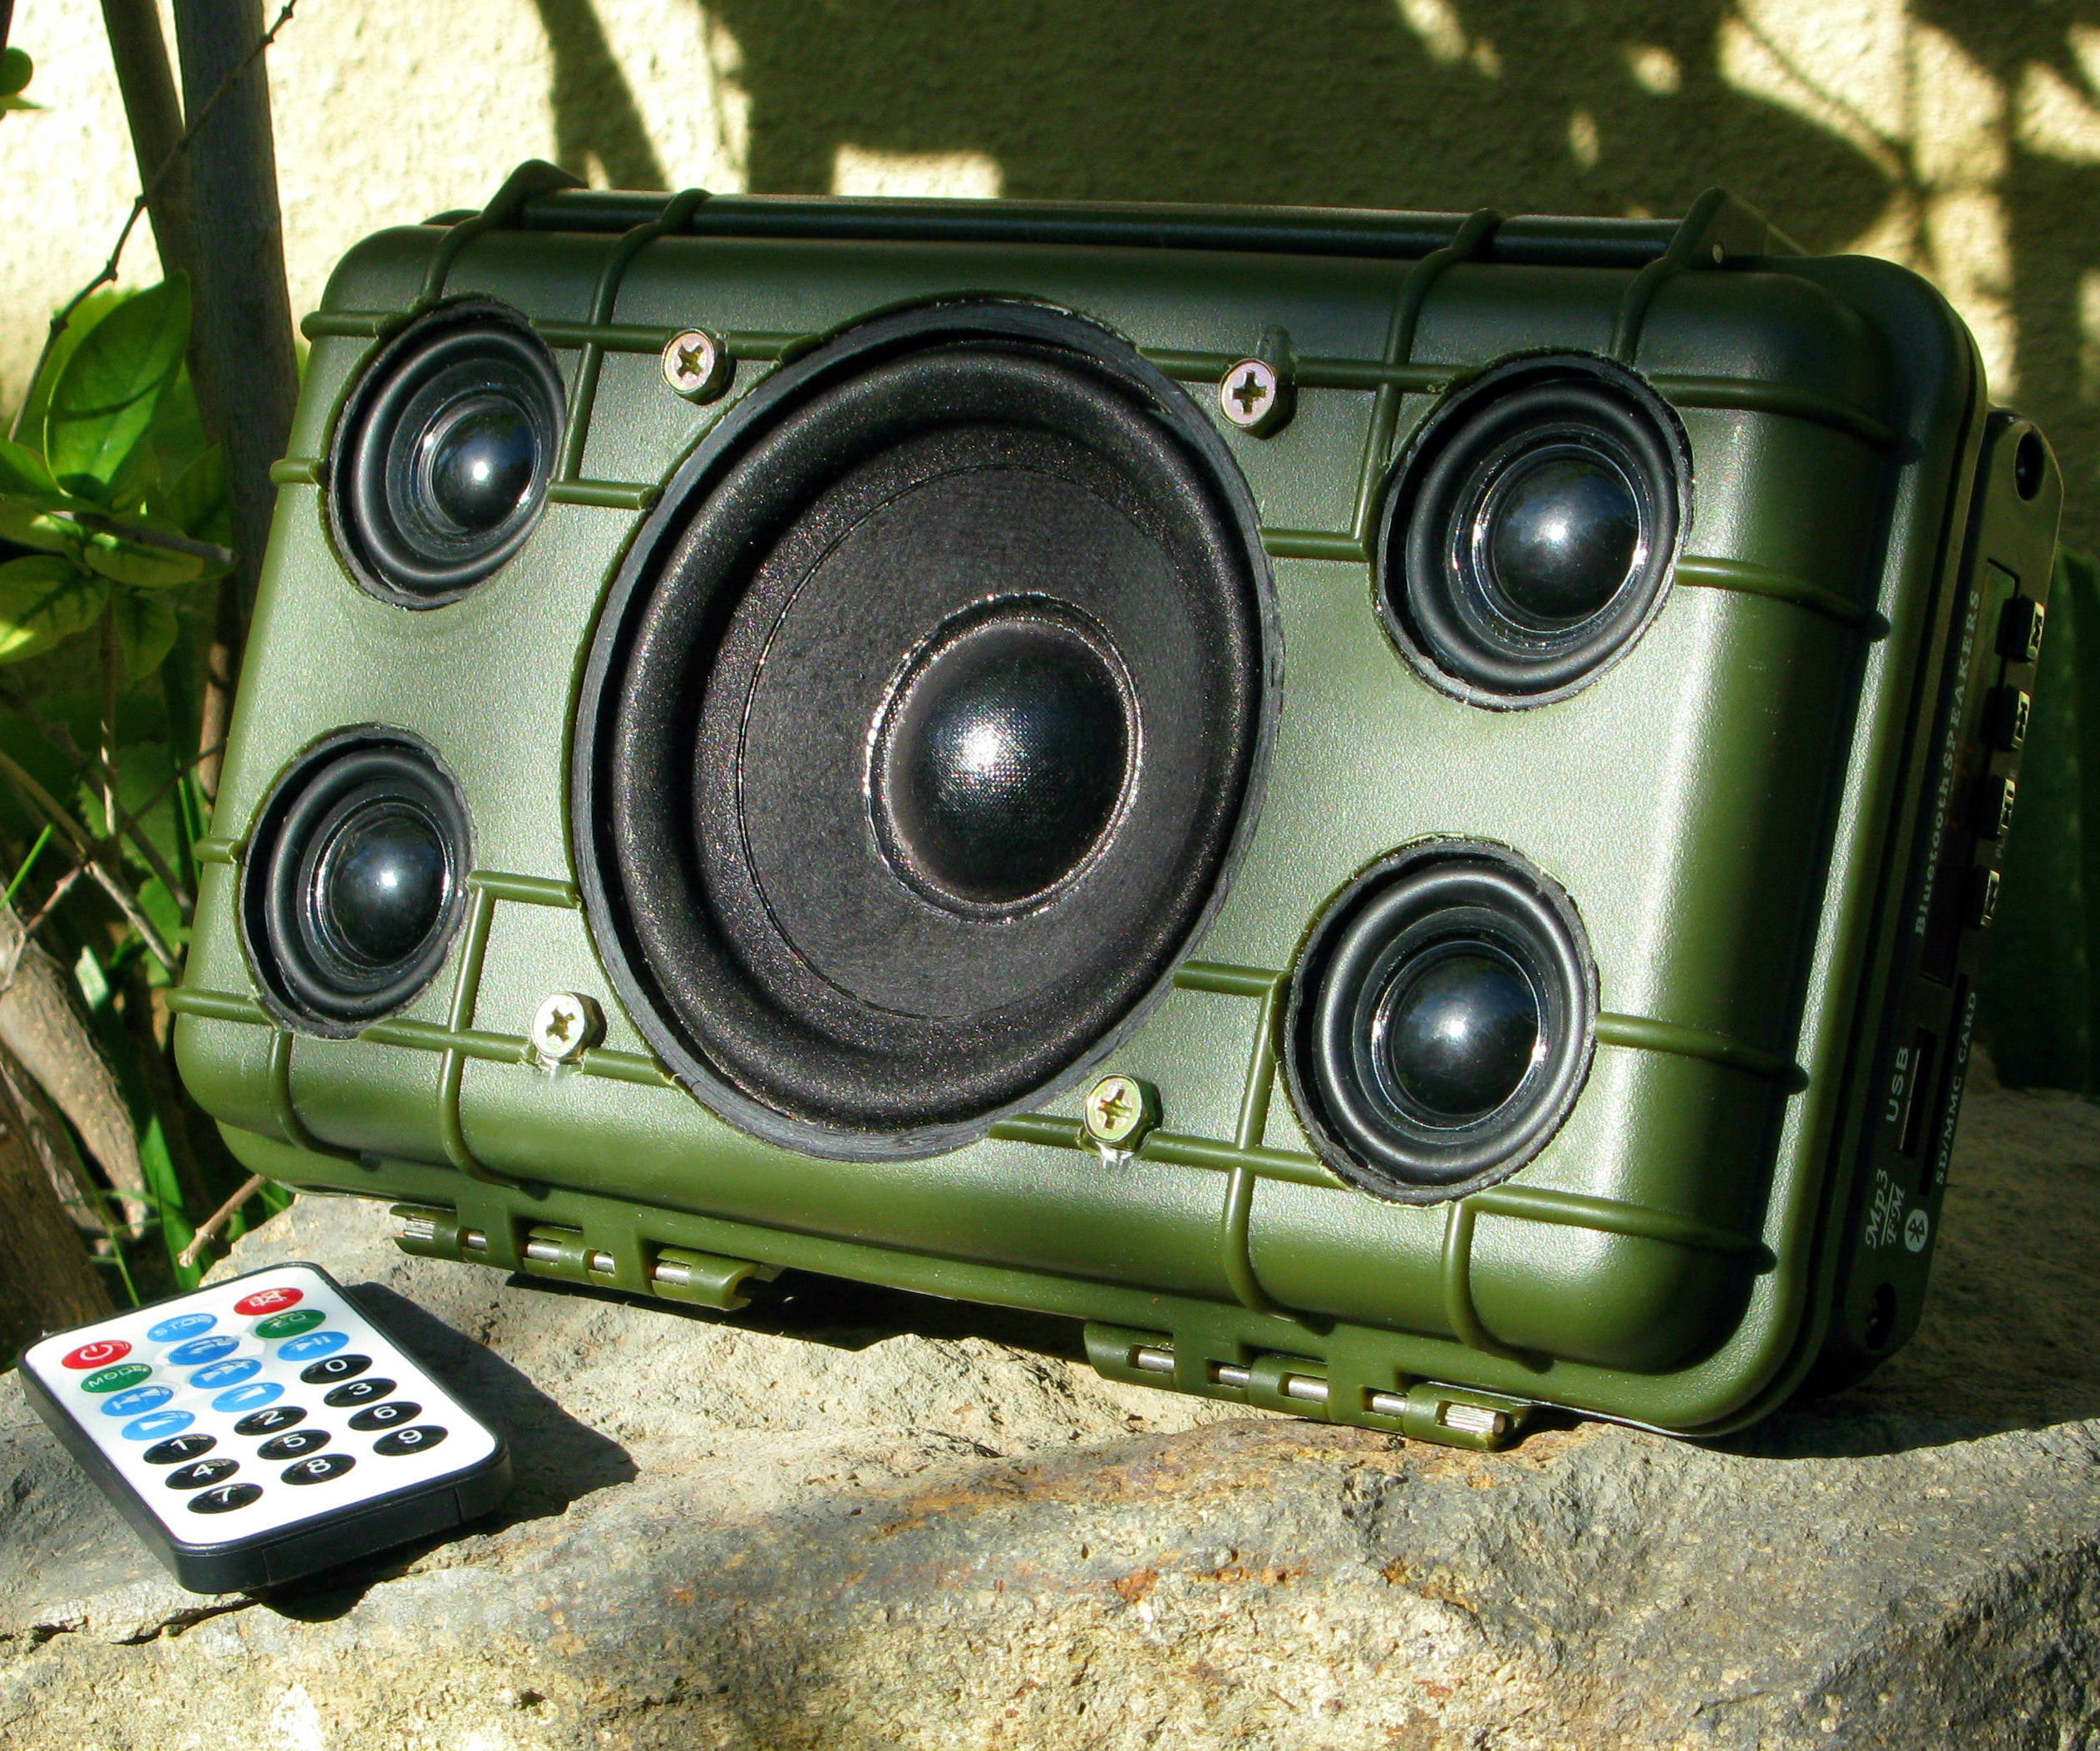 Diy Tough Bluetooth Boombox Lasts 20hrs 12 Steps With